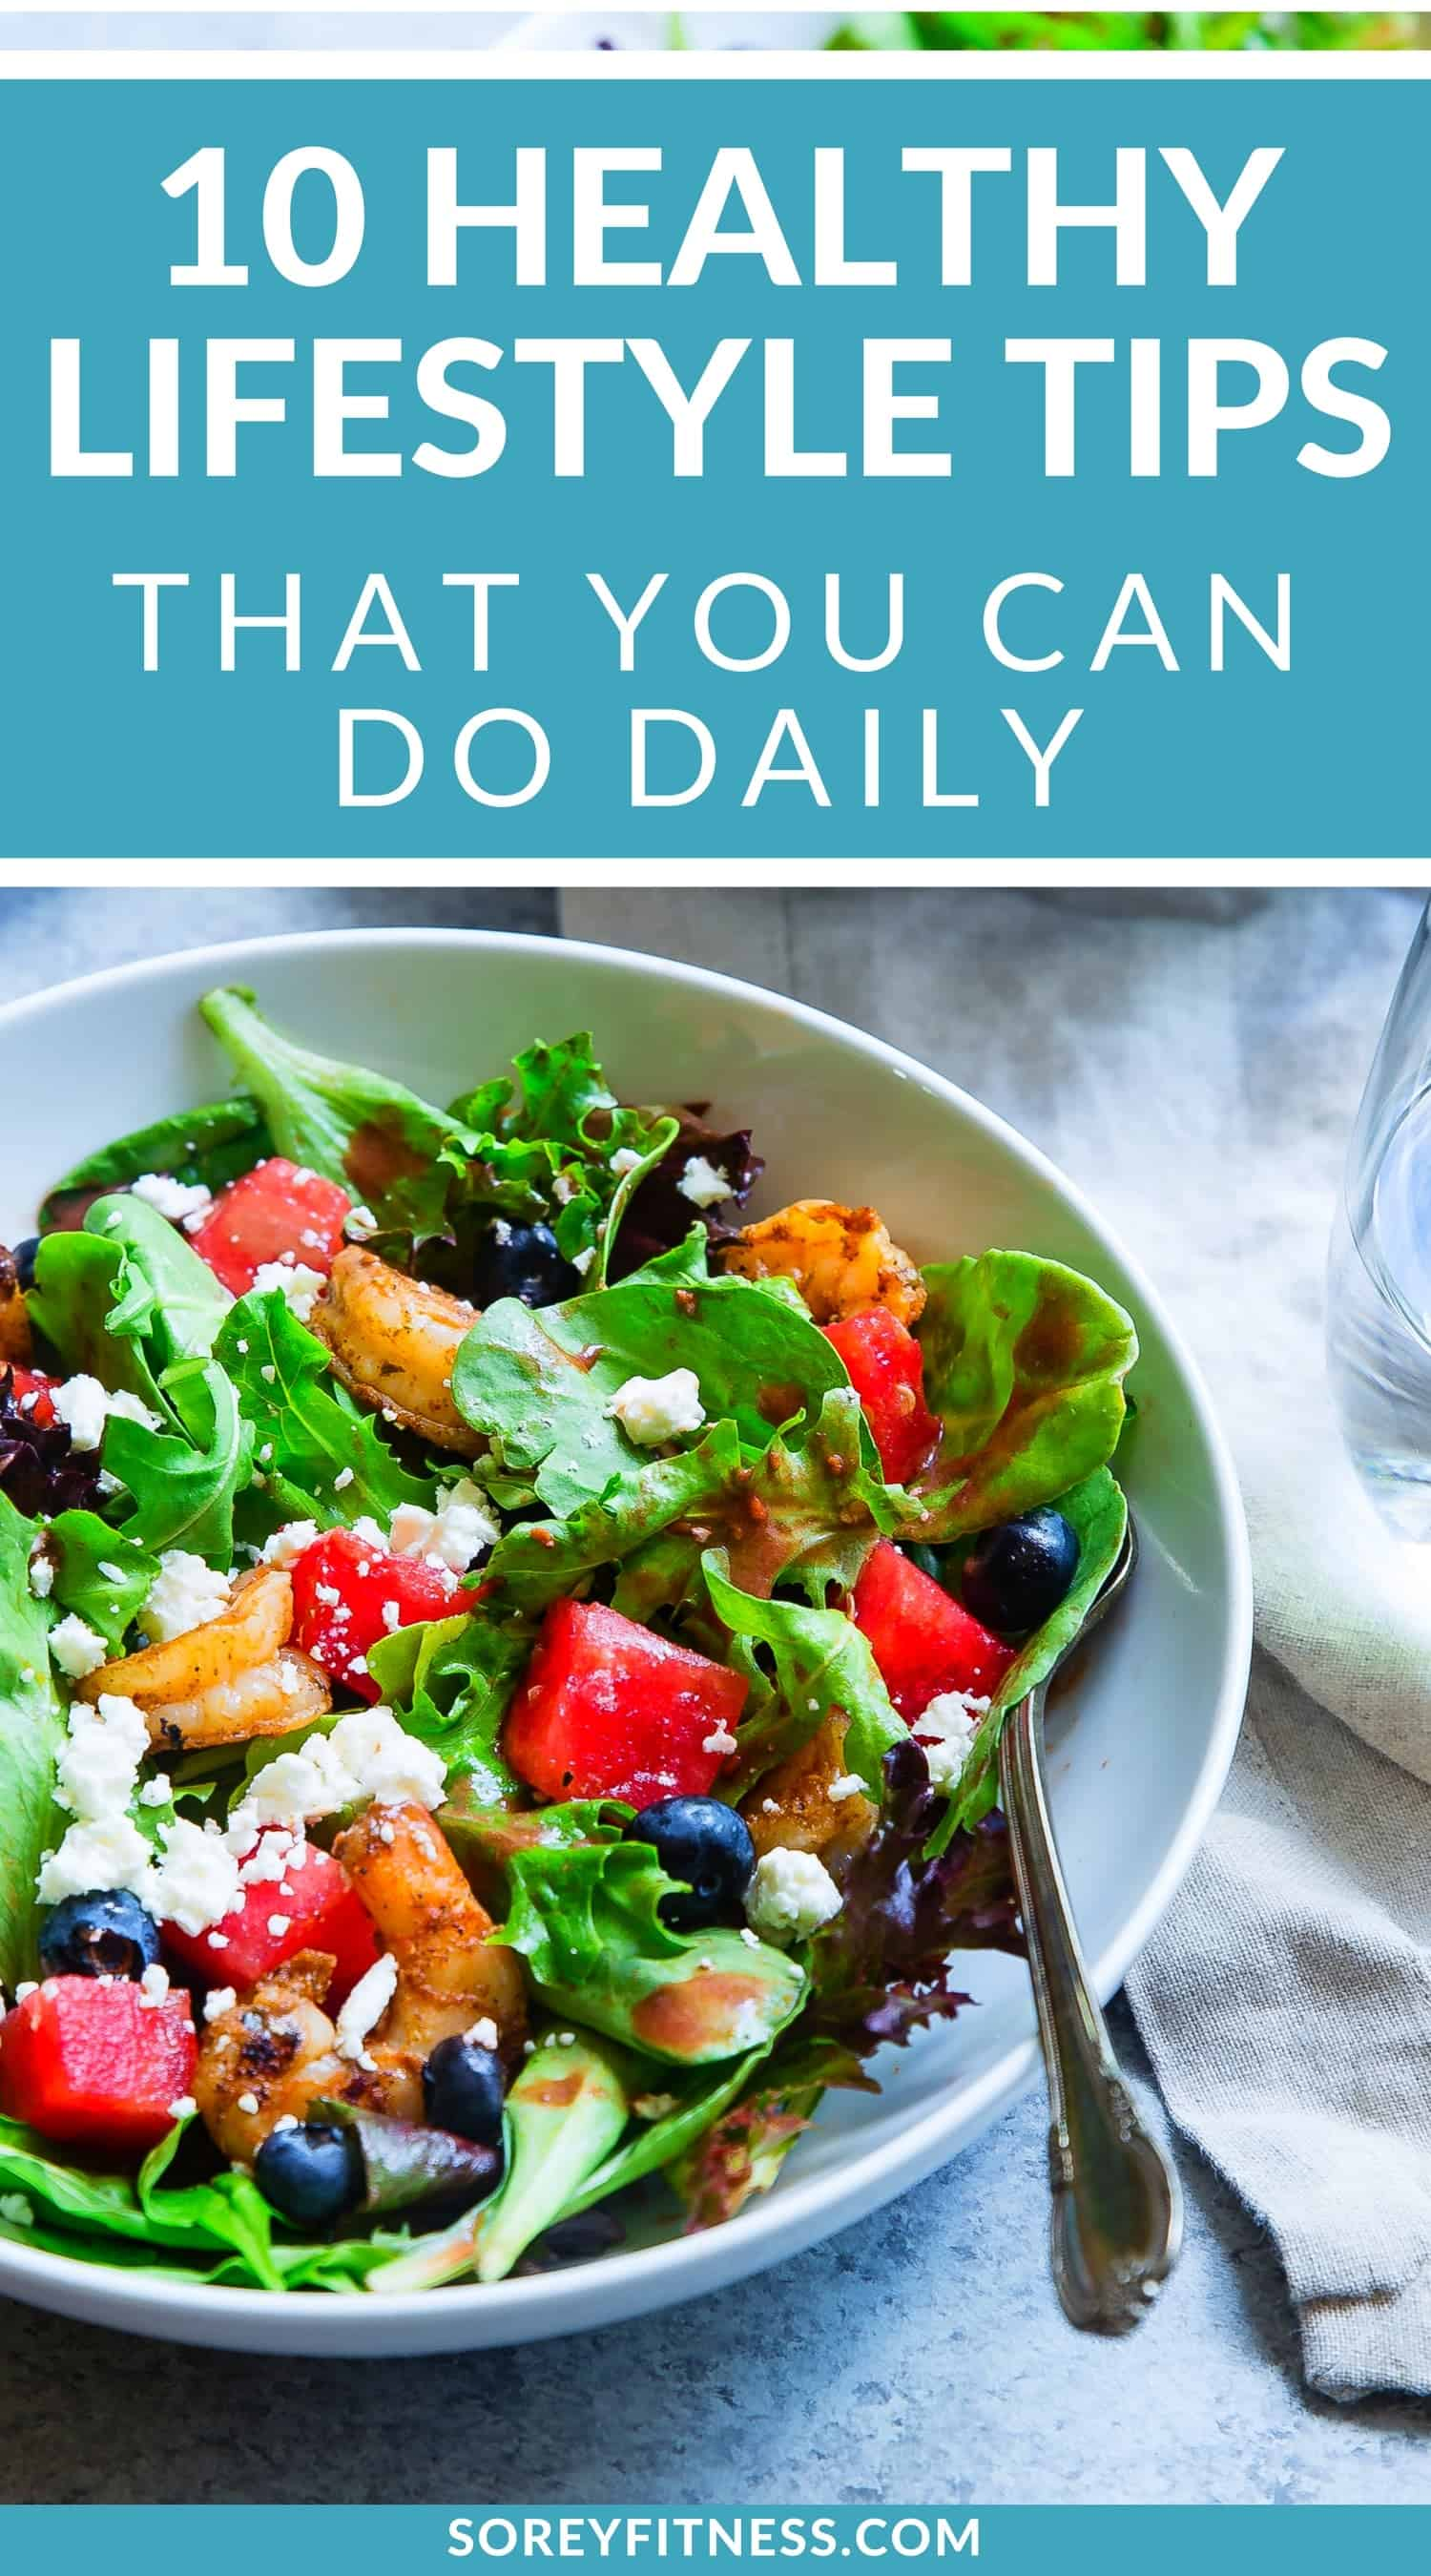 10 Healthy Lifestyle Tips [Easy Habits You Can Do Daily]